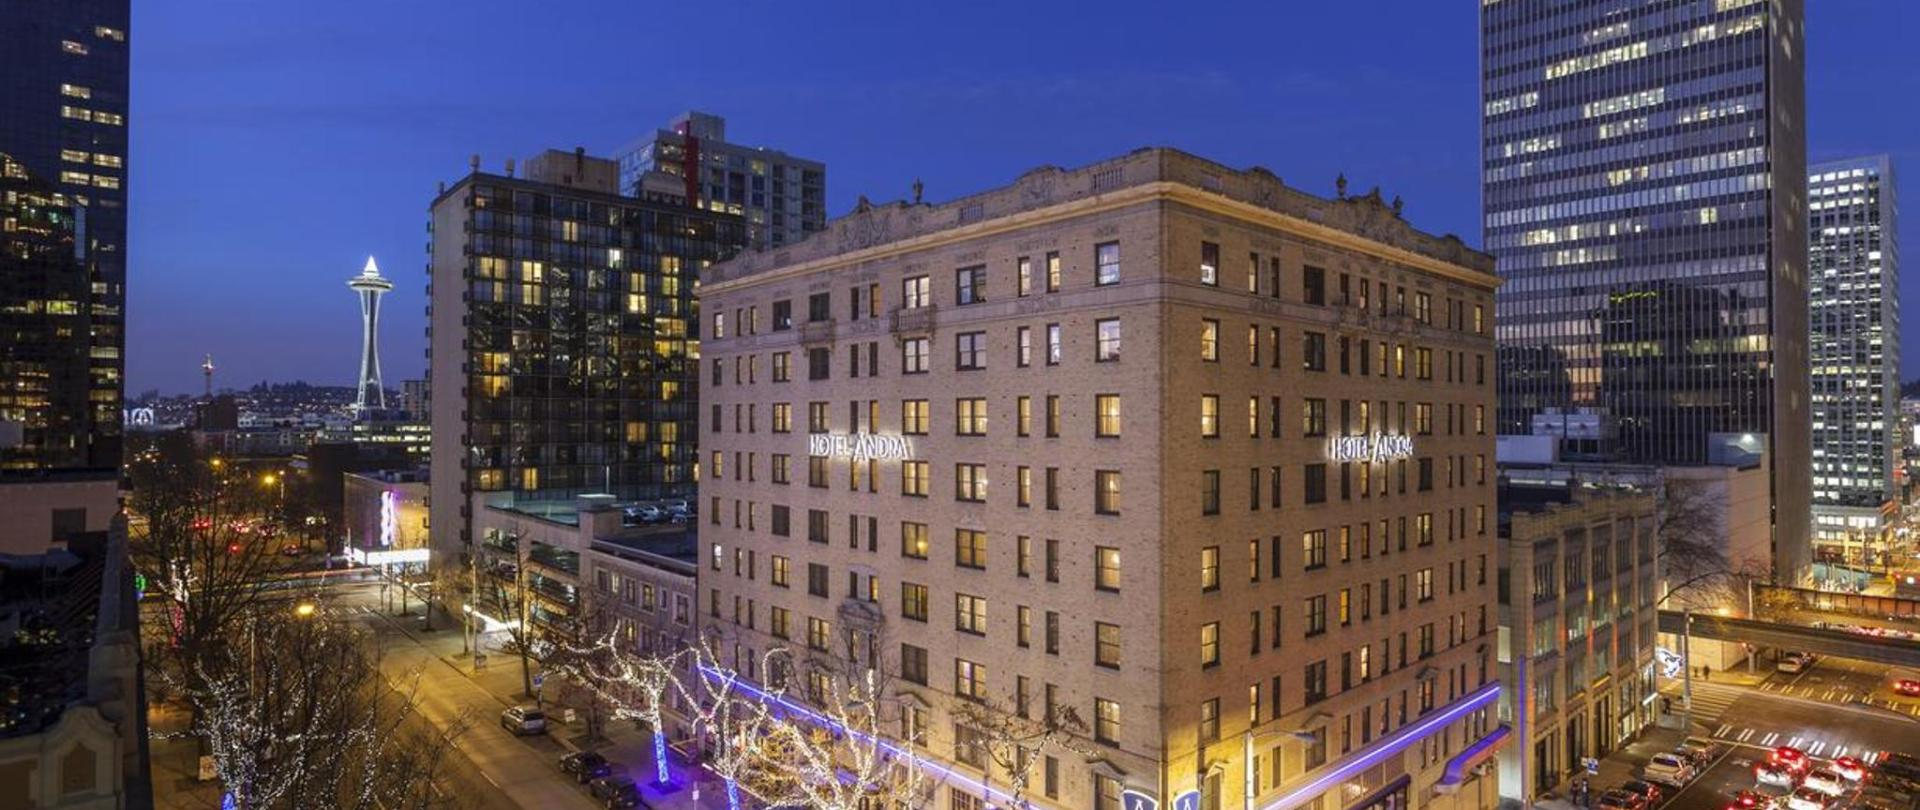 Boutique Hotel In Downtown Seattle Wa Hotels Ändra United States Of America